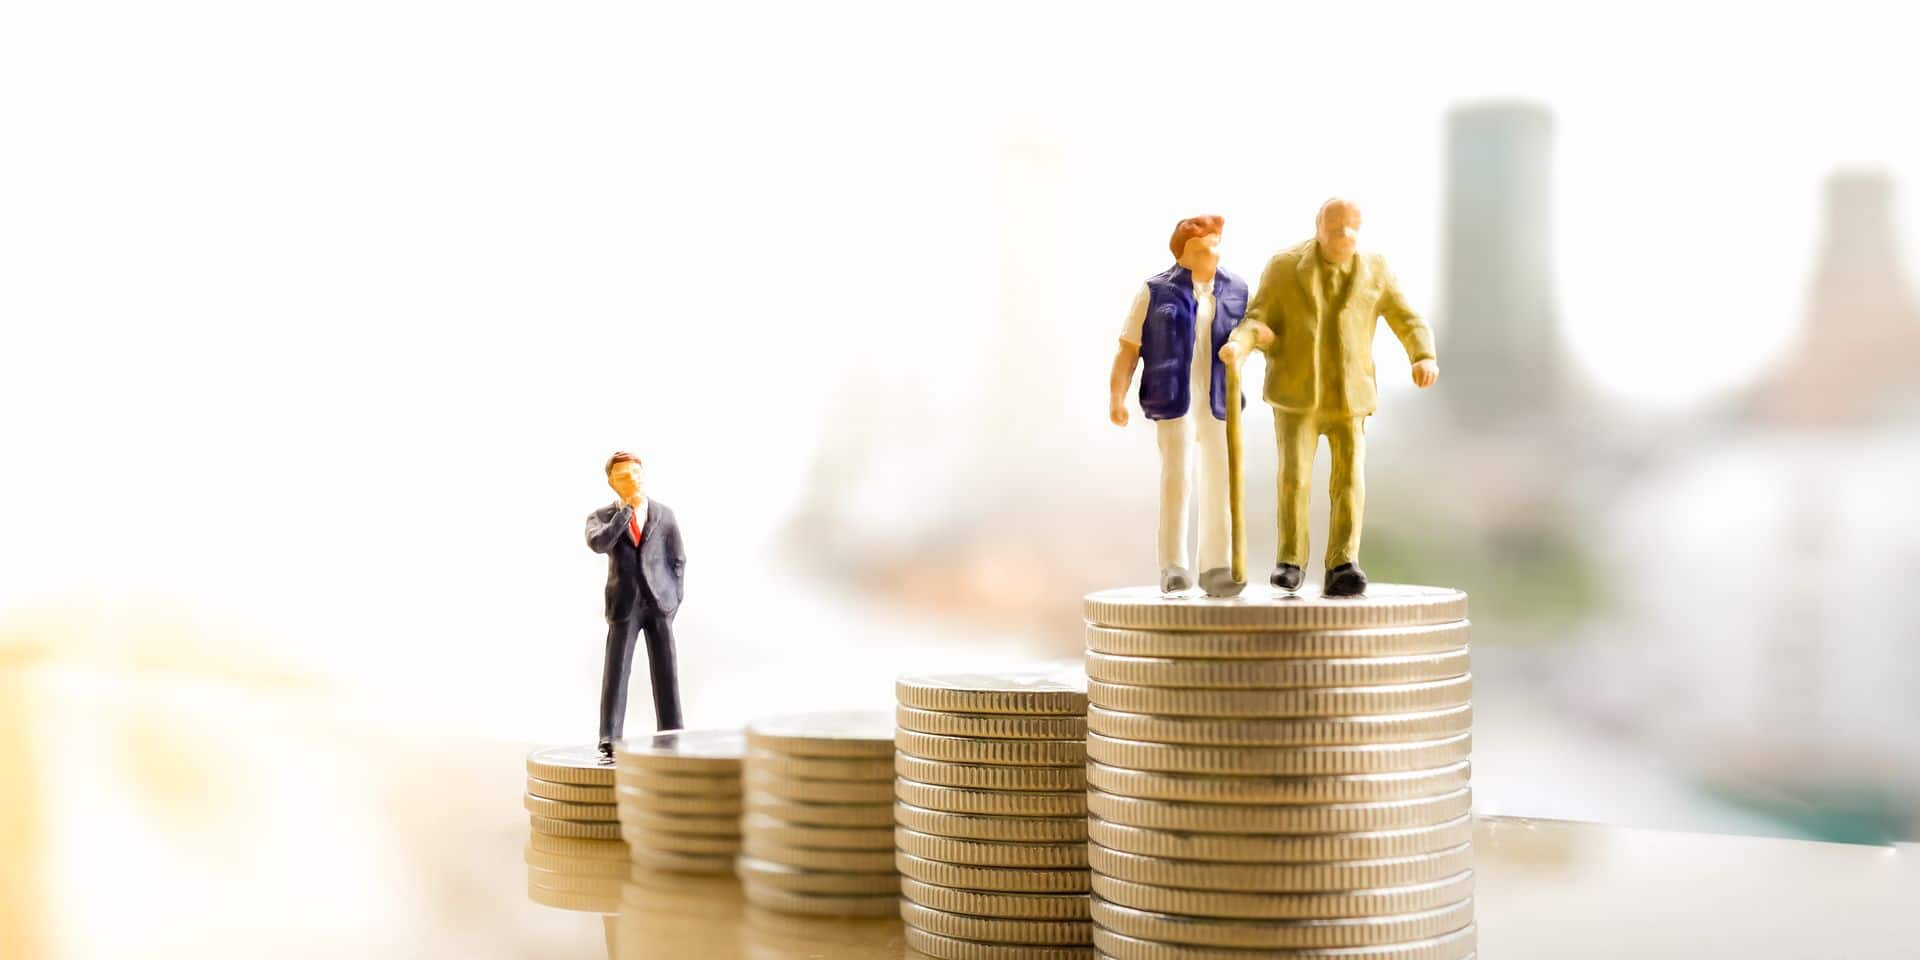 Concept,Of,Retirement,Planning.,Miniature,People:,Old,Couple,Figure,Standing